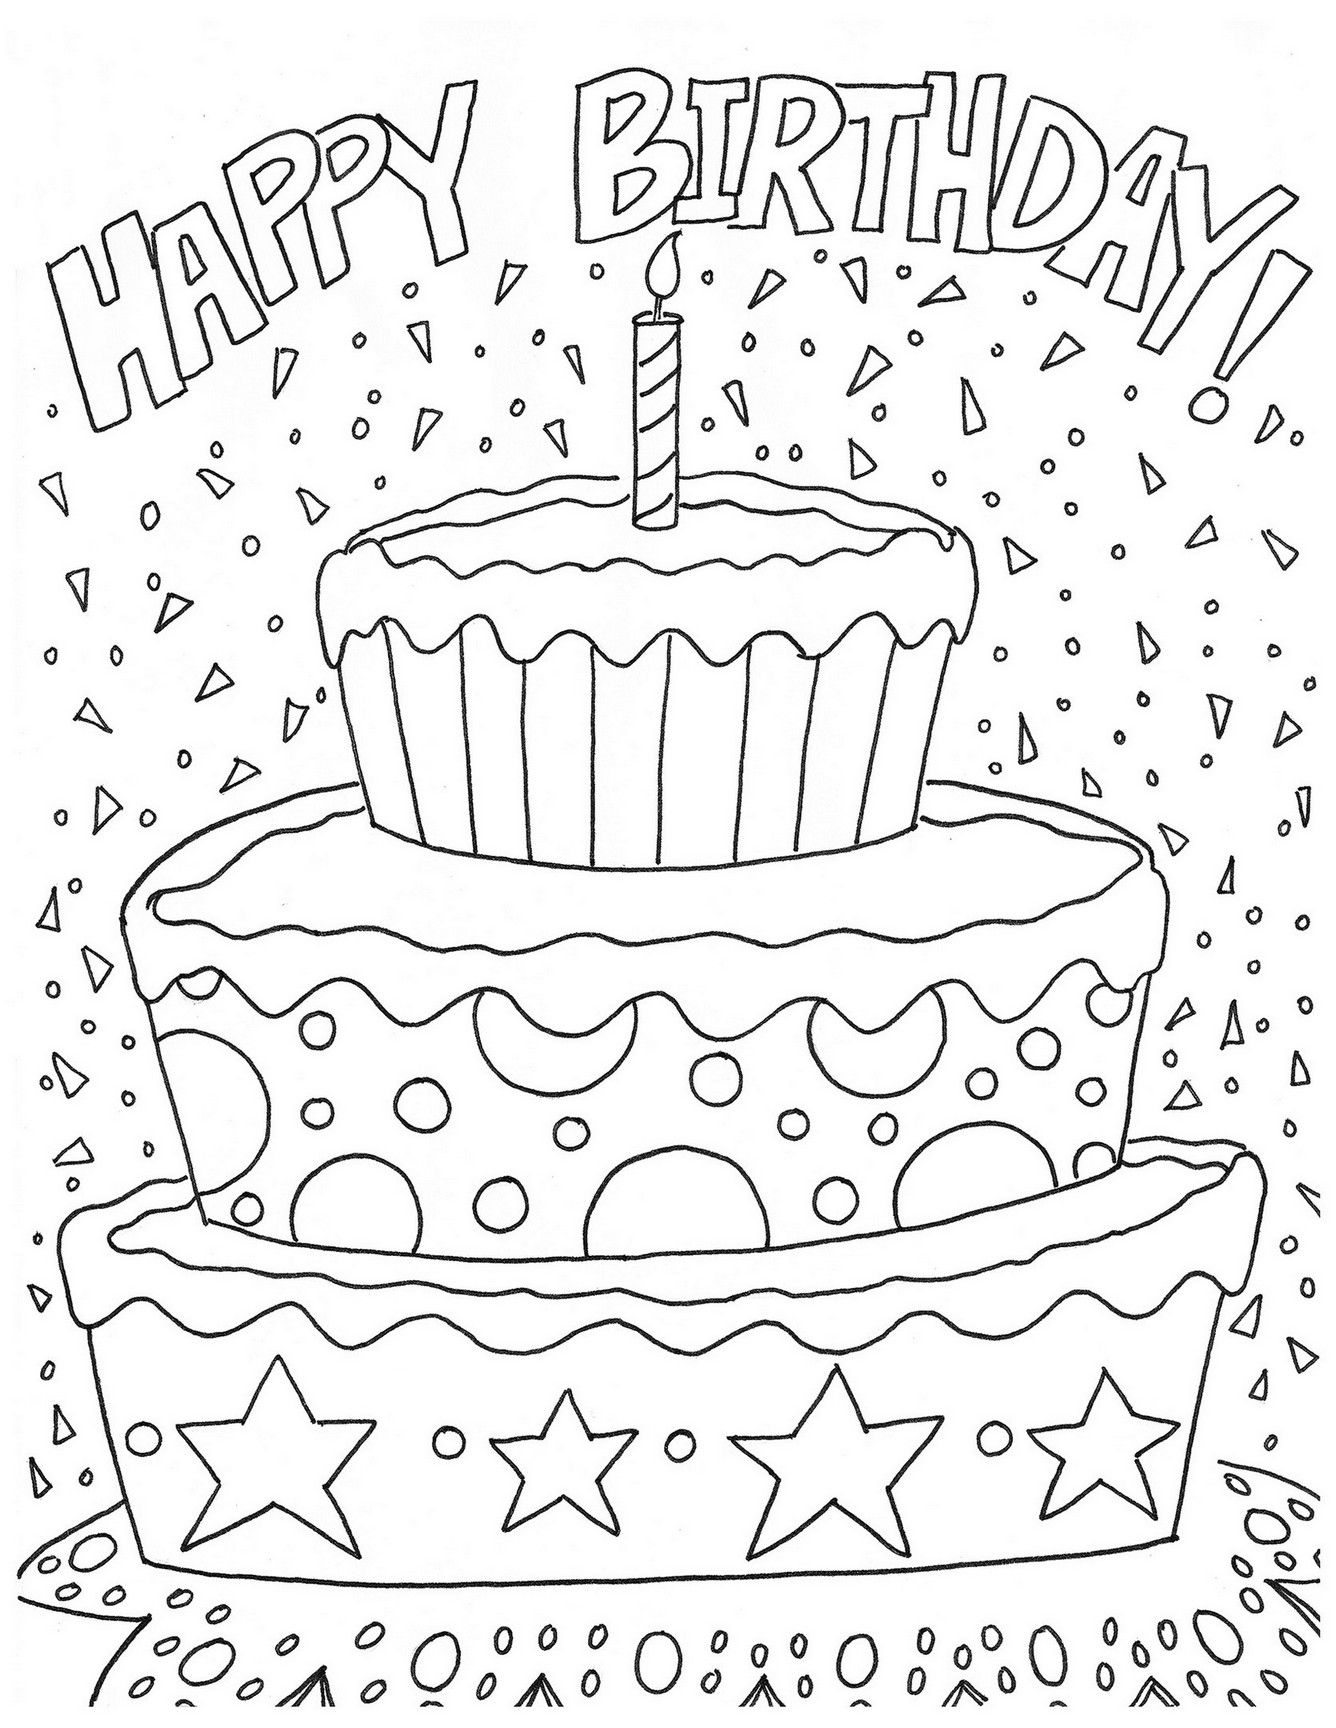 coloring page happy birthday printable | Coloring Board | Pinterest ...